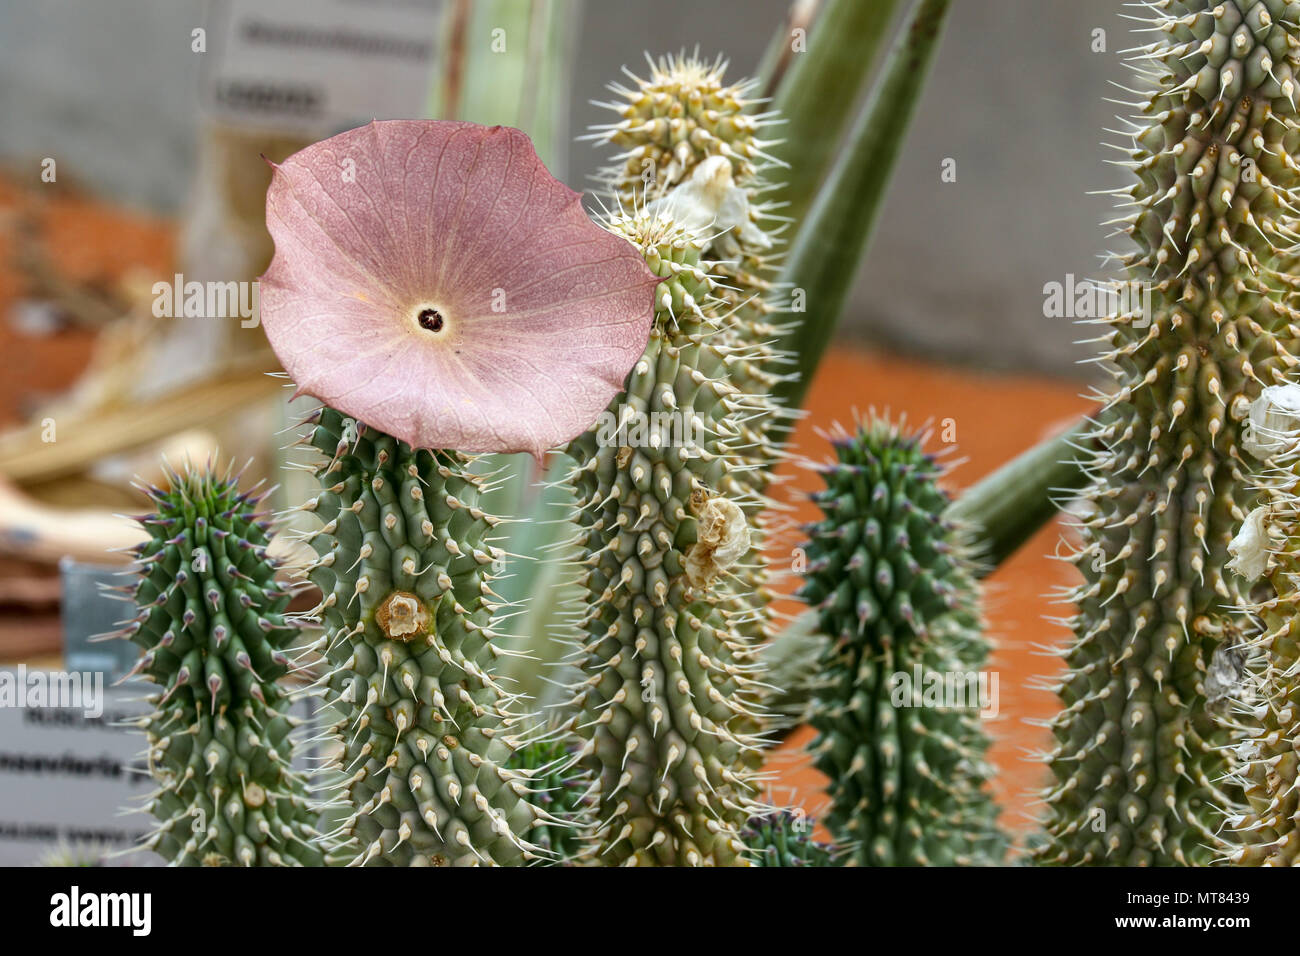 Close-up Hoodia succulent plant with single flower, Capetown, South Africa - Stock Image